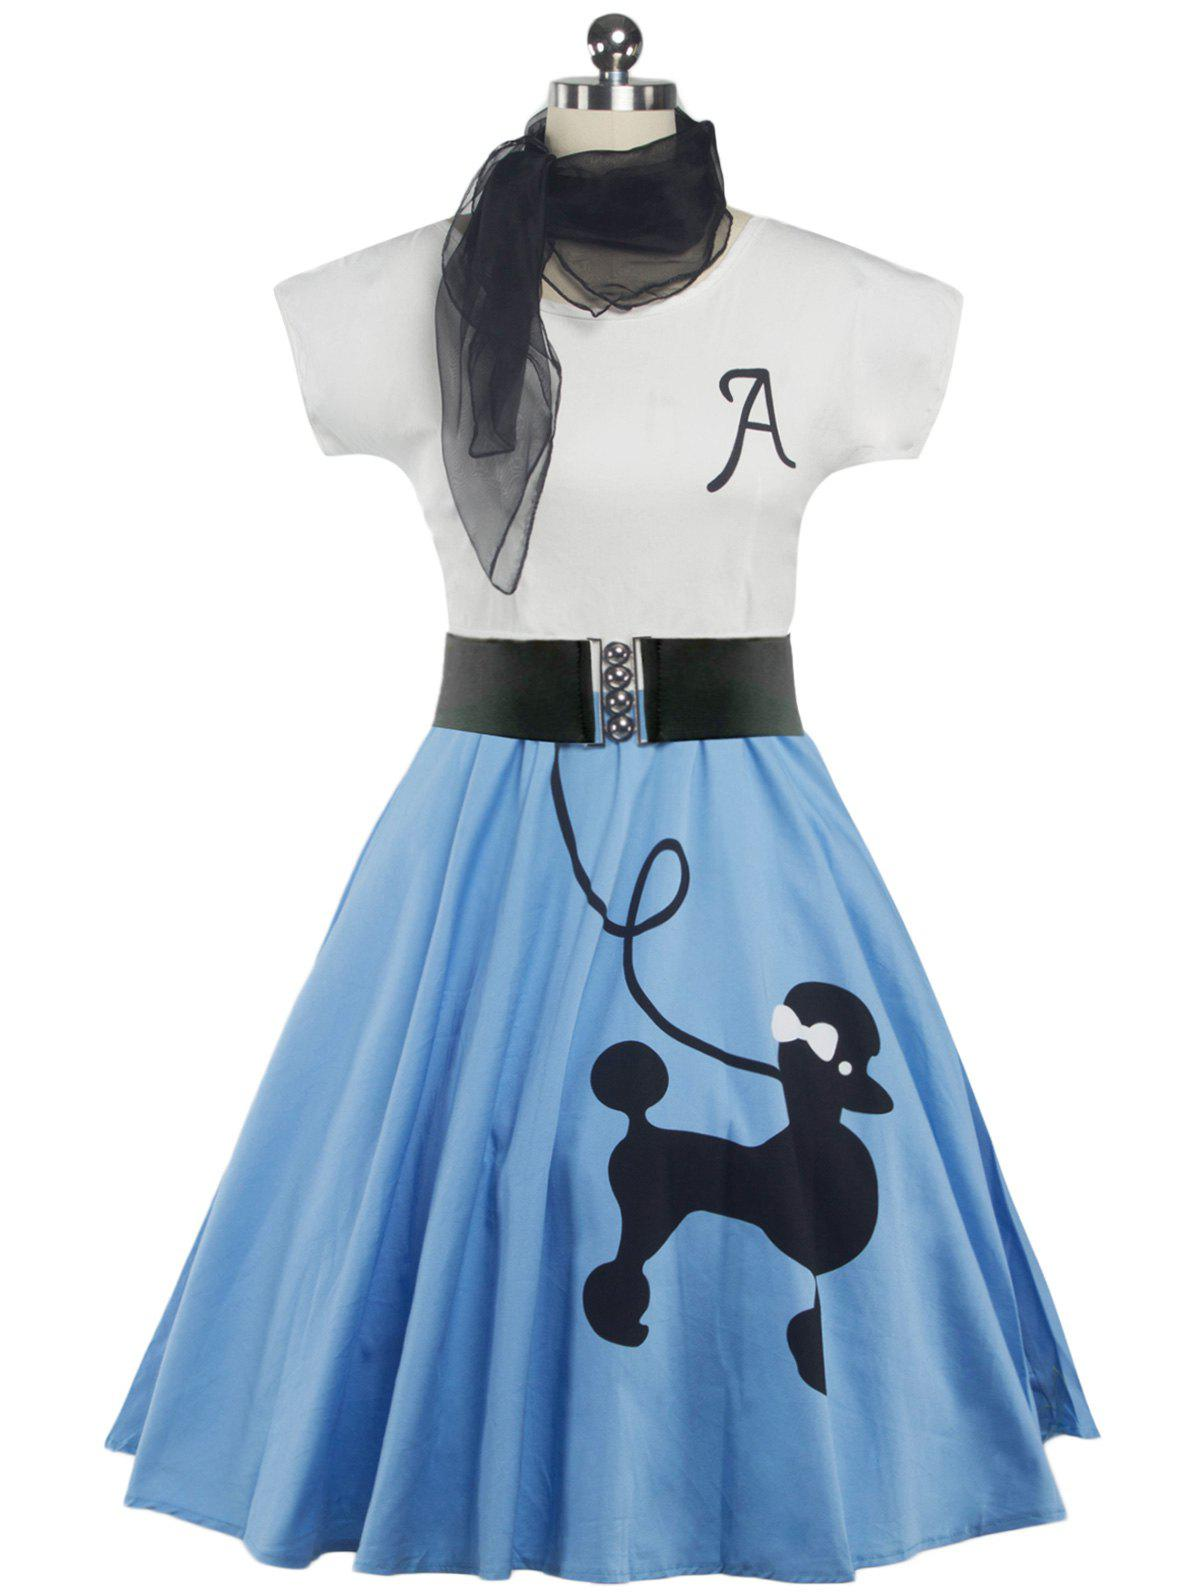 Retro Poodle Print High Waist Skater Dress - LIGHT BLUE M